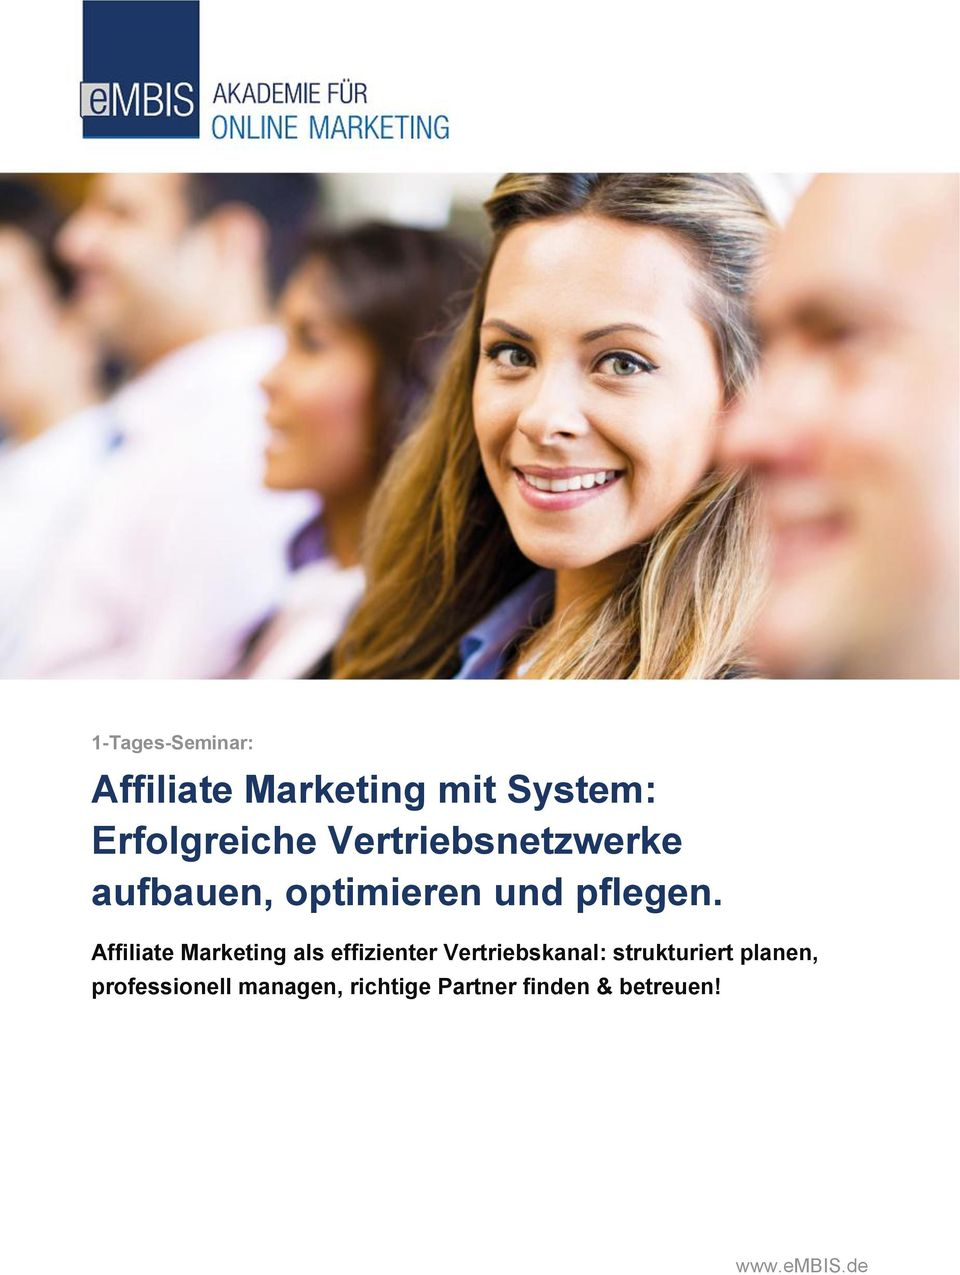 Affiliate Marketing als effizienter Vertriebskanal: strukturiert